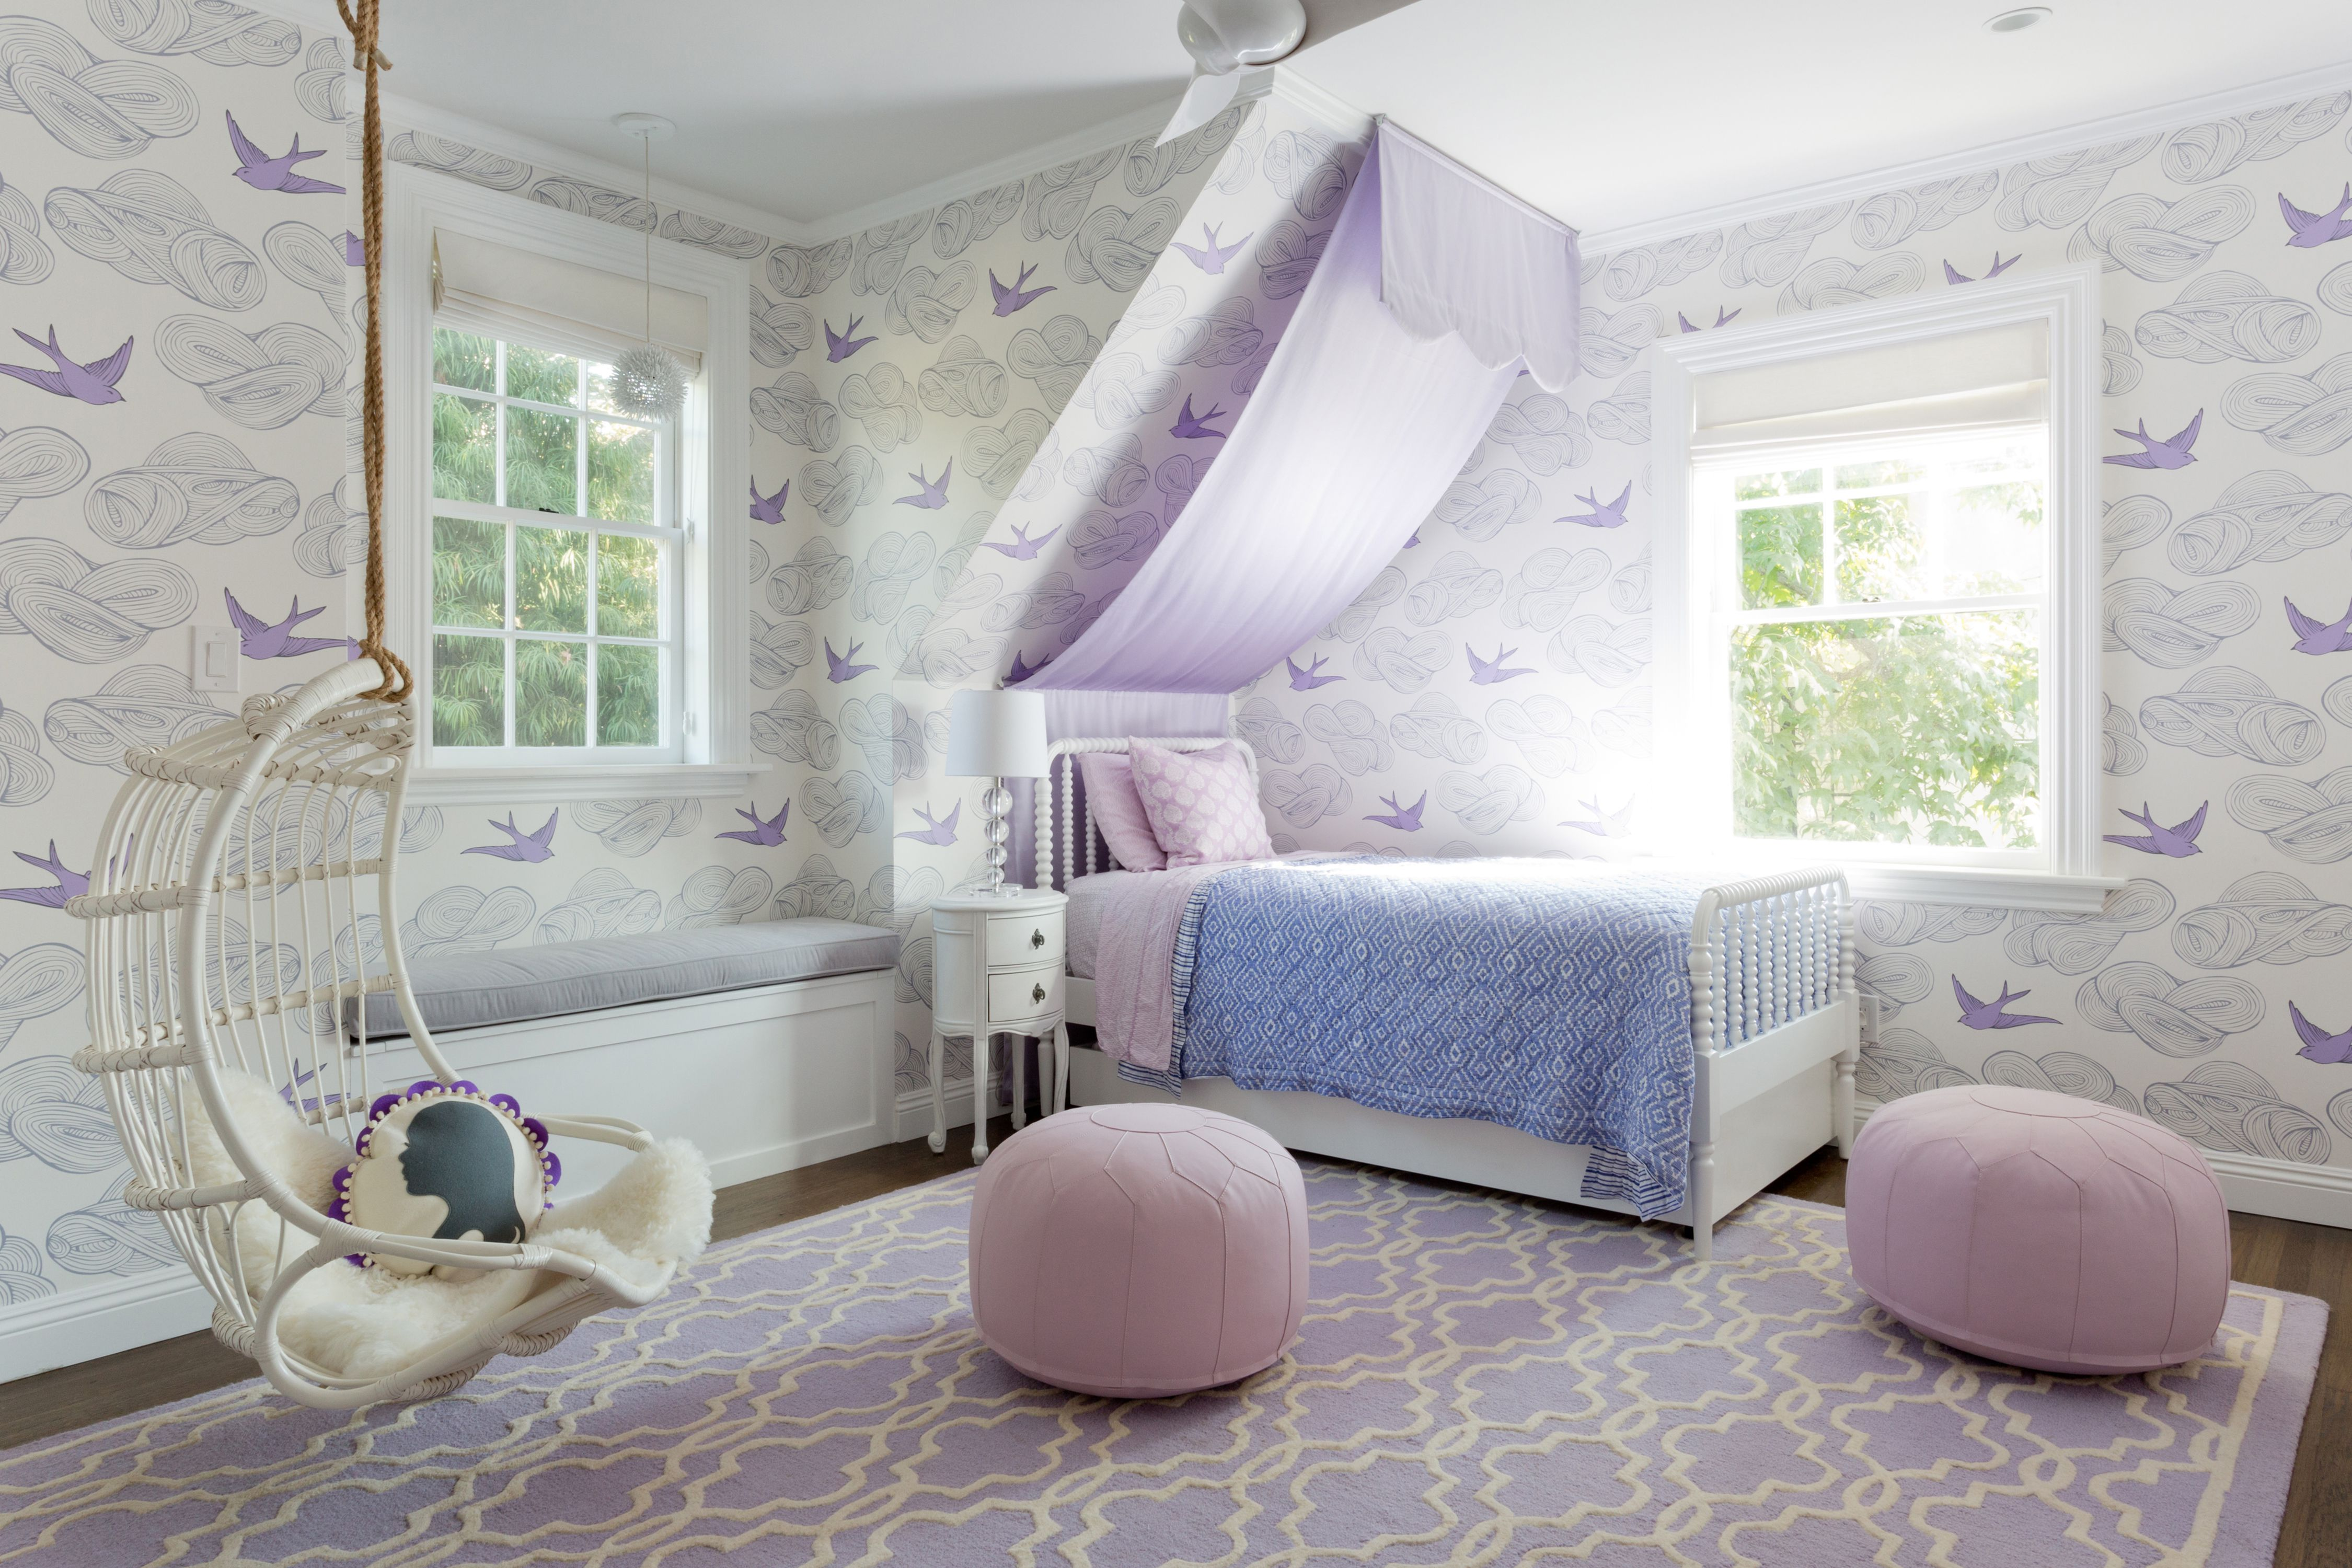 21 Beautiful Girls' Rooms With Canopy Beds on Beautiful Room For Girls  id=89187